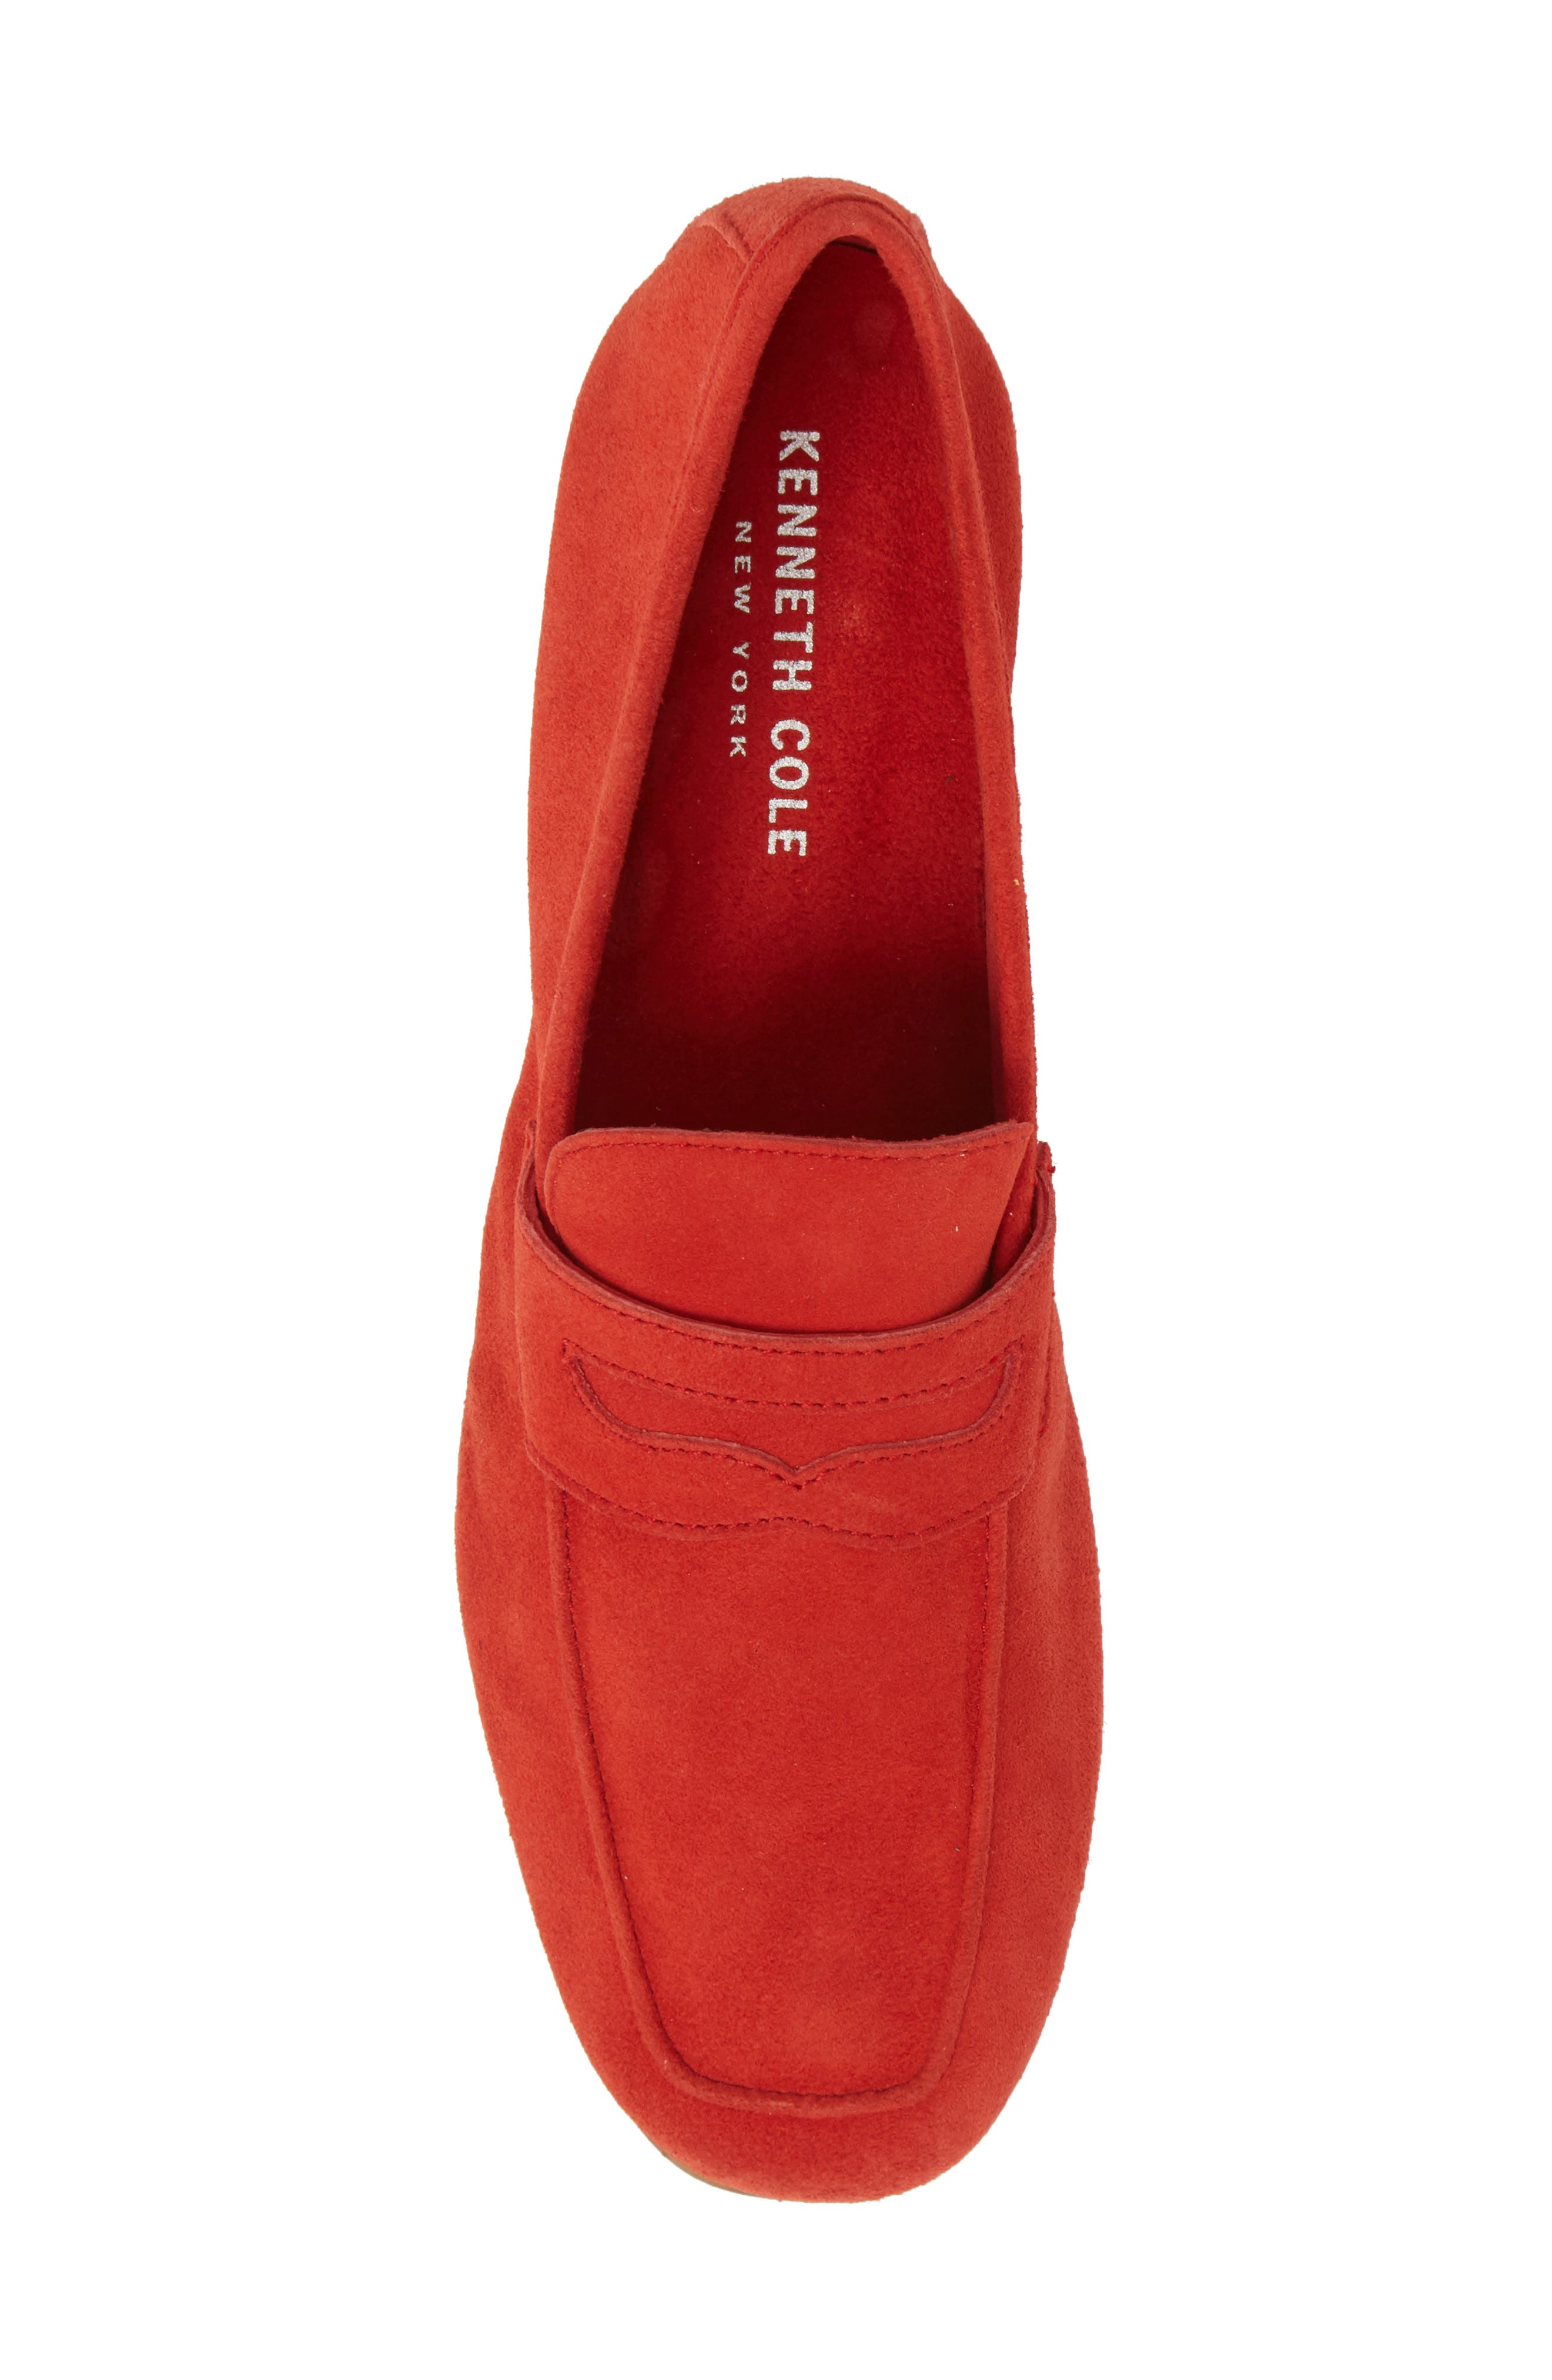 Dean Apron Toe Penny Loafer,                             Alternate thumbnail 5, color,                             Red Suede